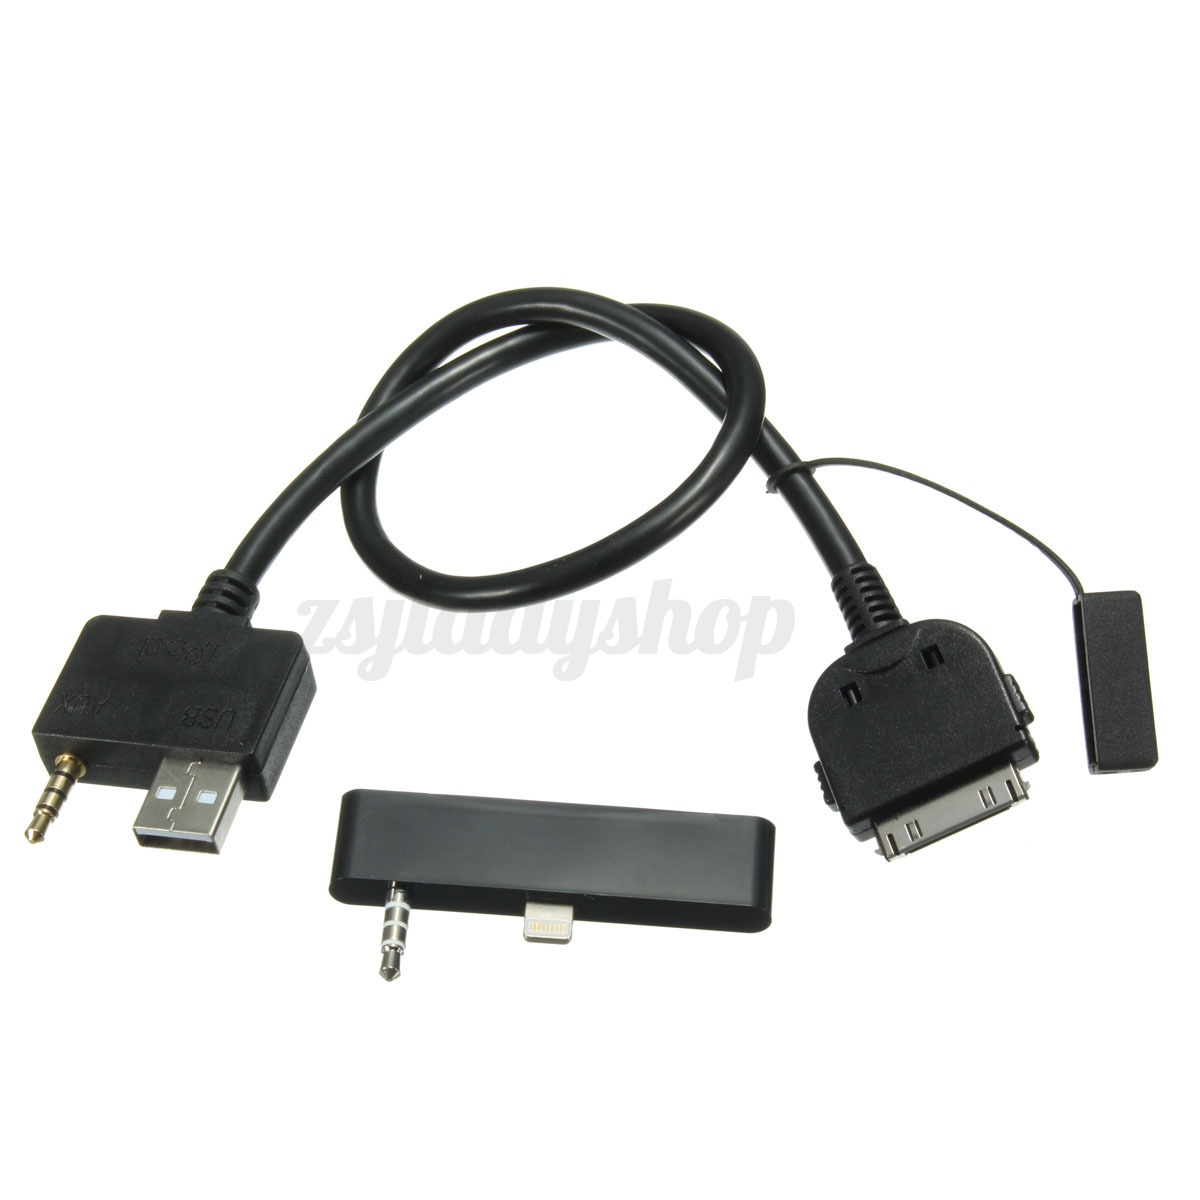 aux adapter cable usb for iphone 5 6 6s ipod kia. Black Bedroom Furniture Sets. Home Design Ideas